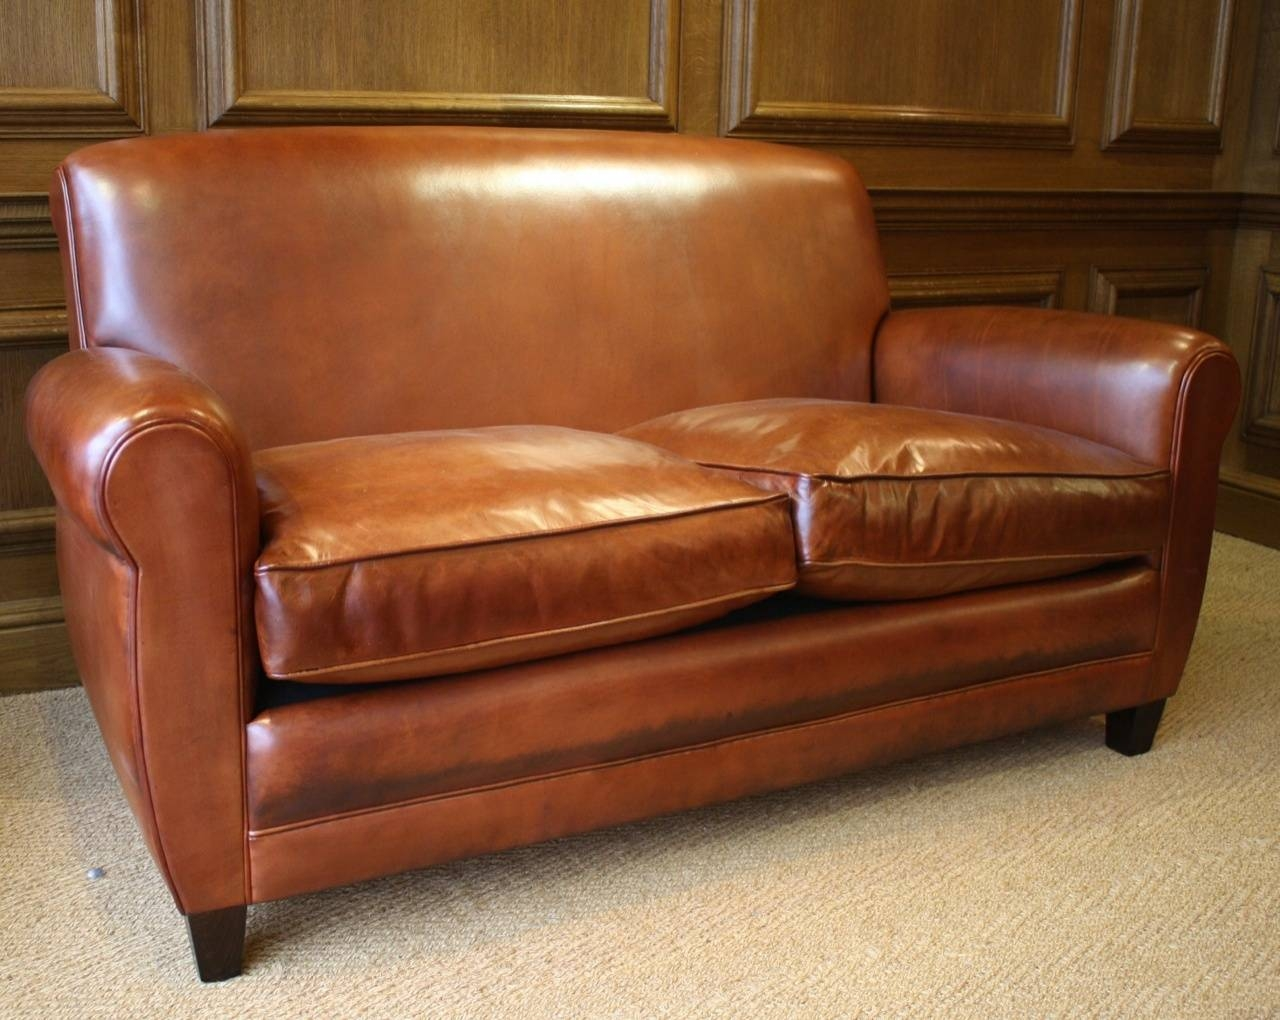 French Leather Sofa, Siege En Cuire, Siege Francais, 20Th Century throughout Carmel Leather Sofas (Image 5 of 15)